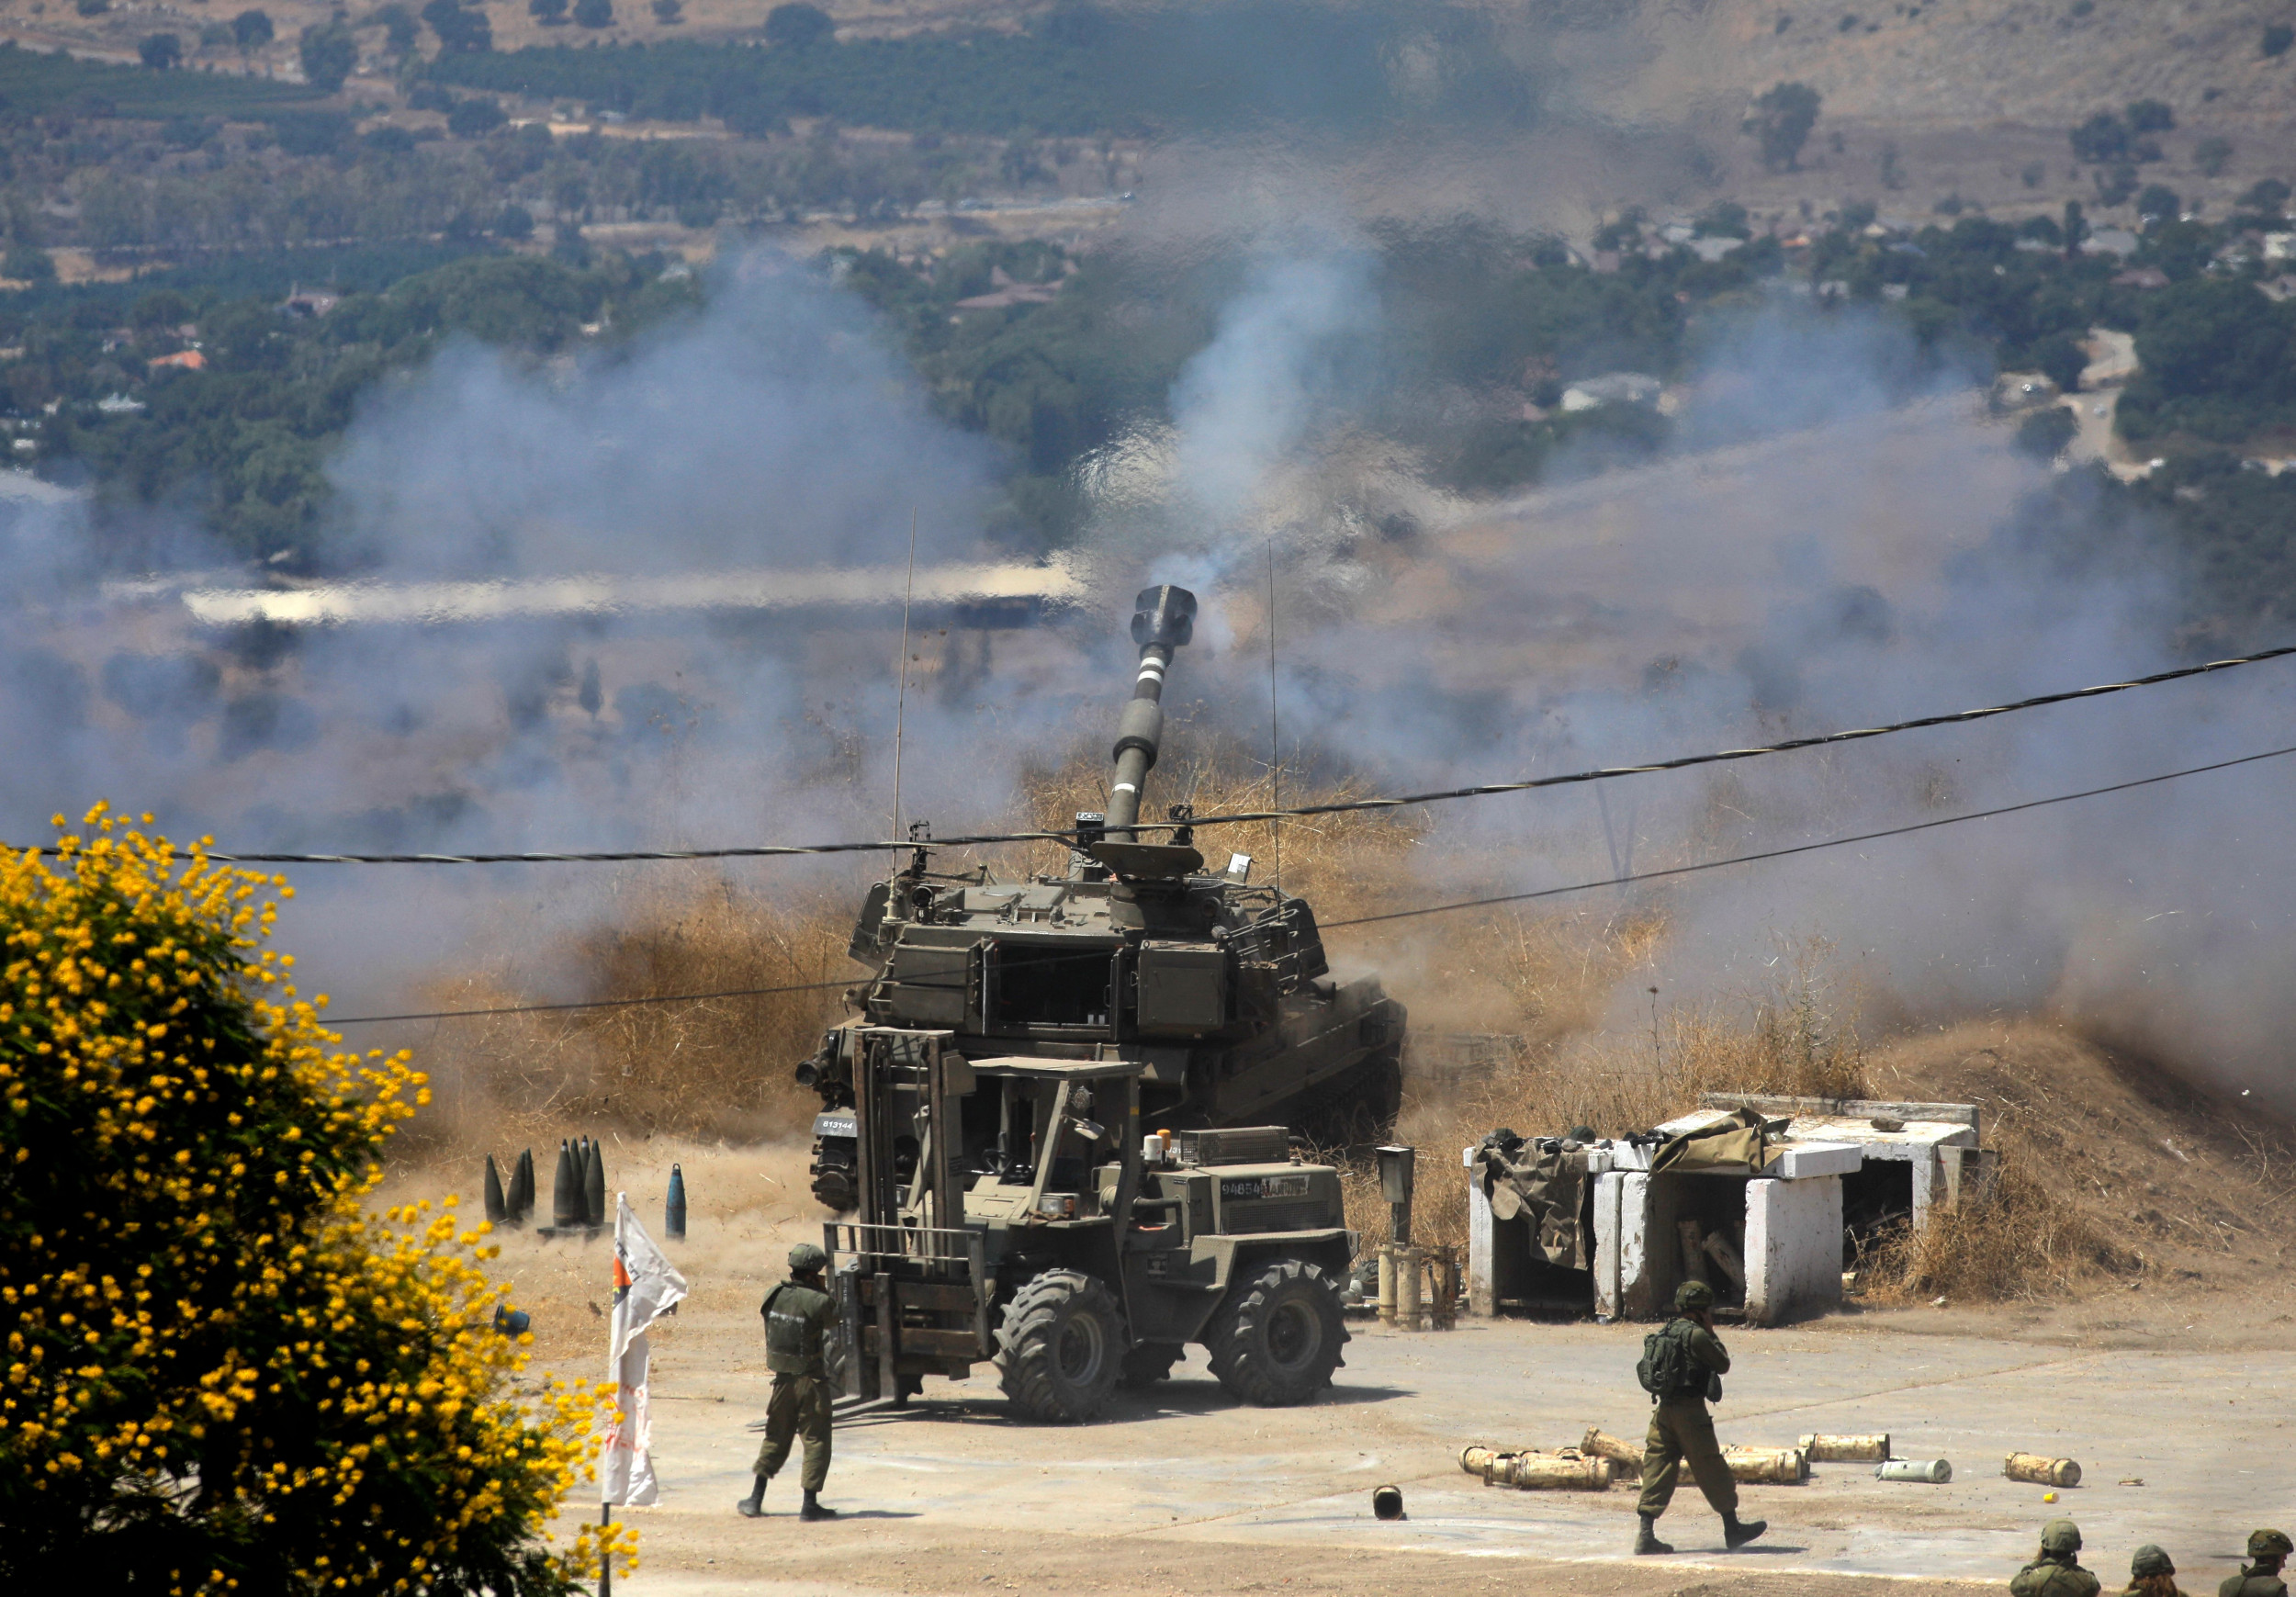 U.N. Forces Plead for Calm as Israel Strikes Continue on Lebanon After Rocket Attacks